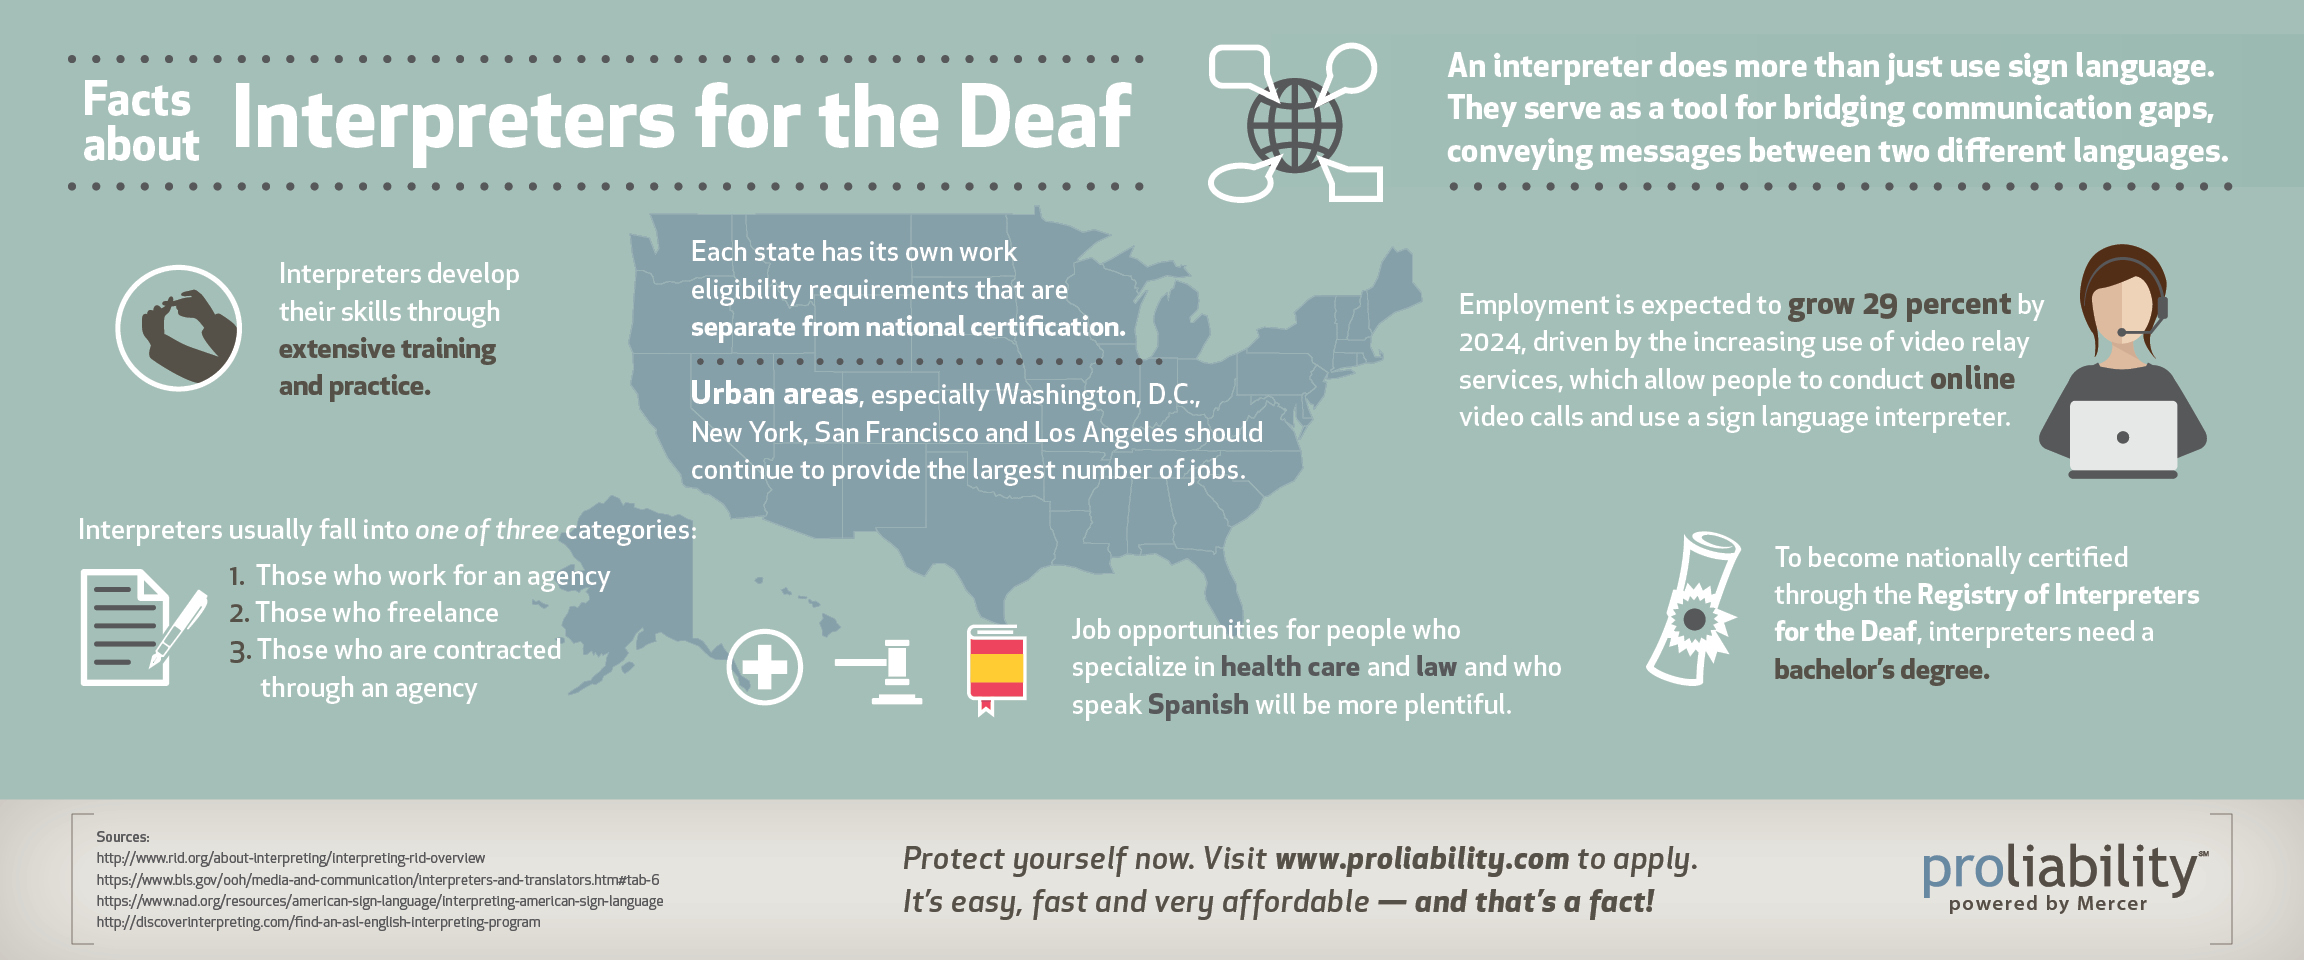 Interpreters for the Deaf Infographic